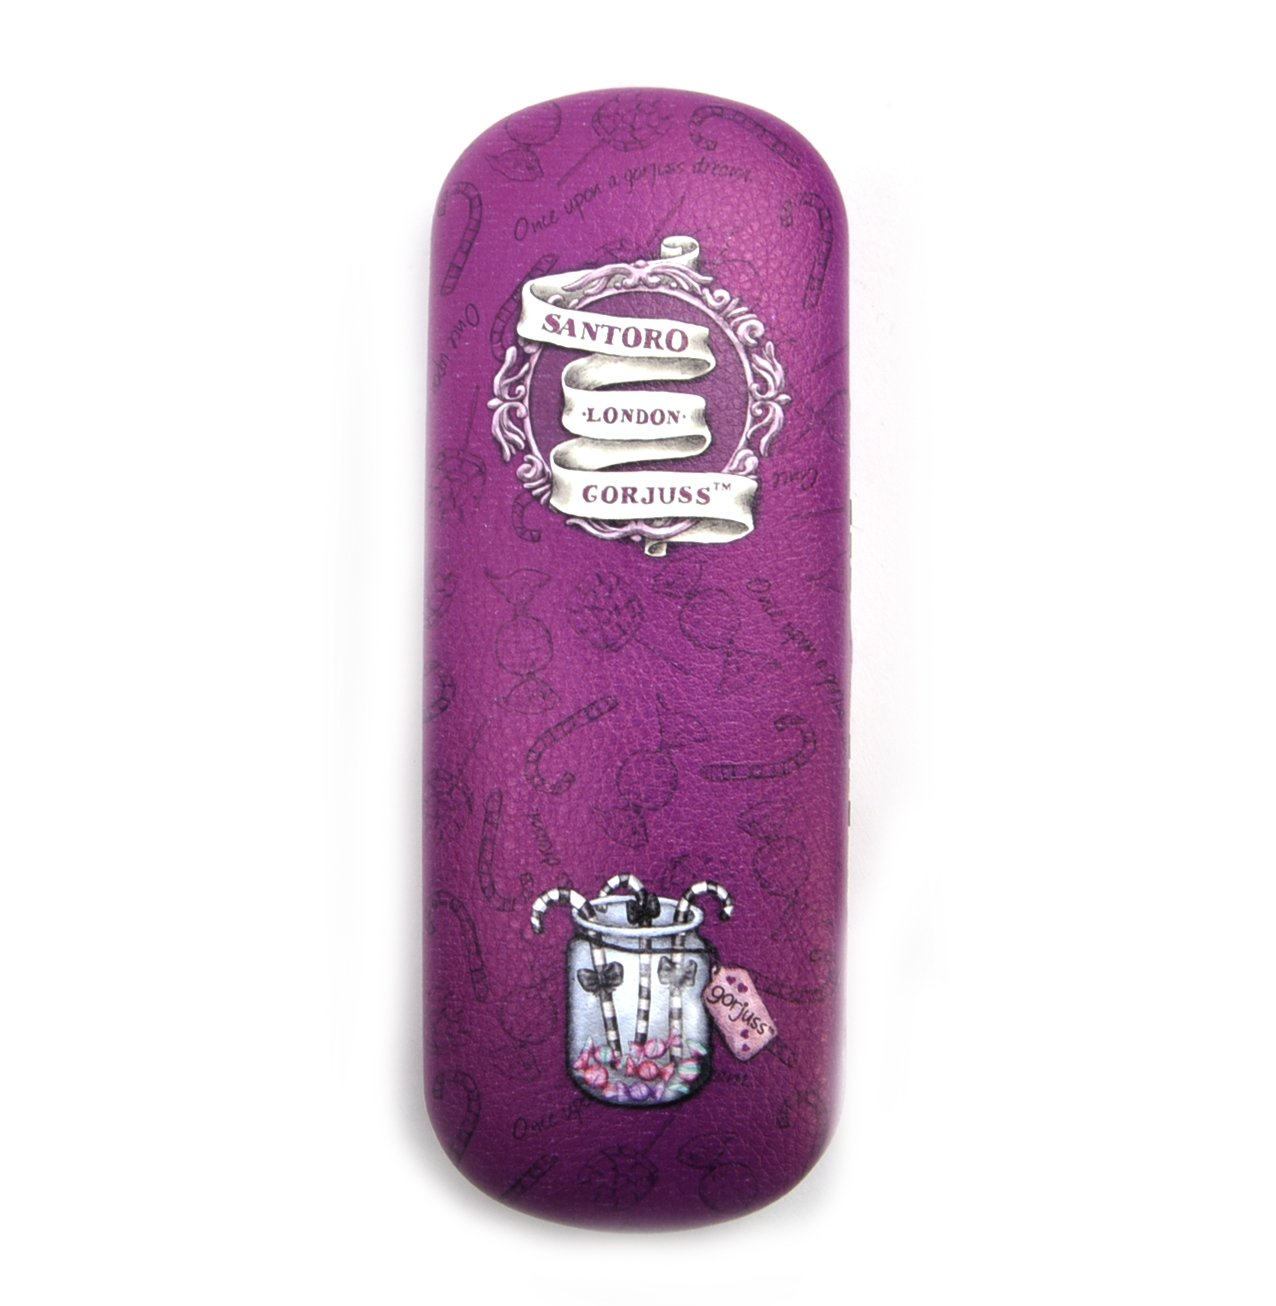 Amazon.com: Gorjuss Sugar and Spice - Glasses Case: Home ...